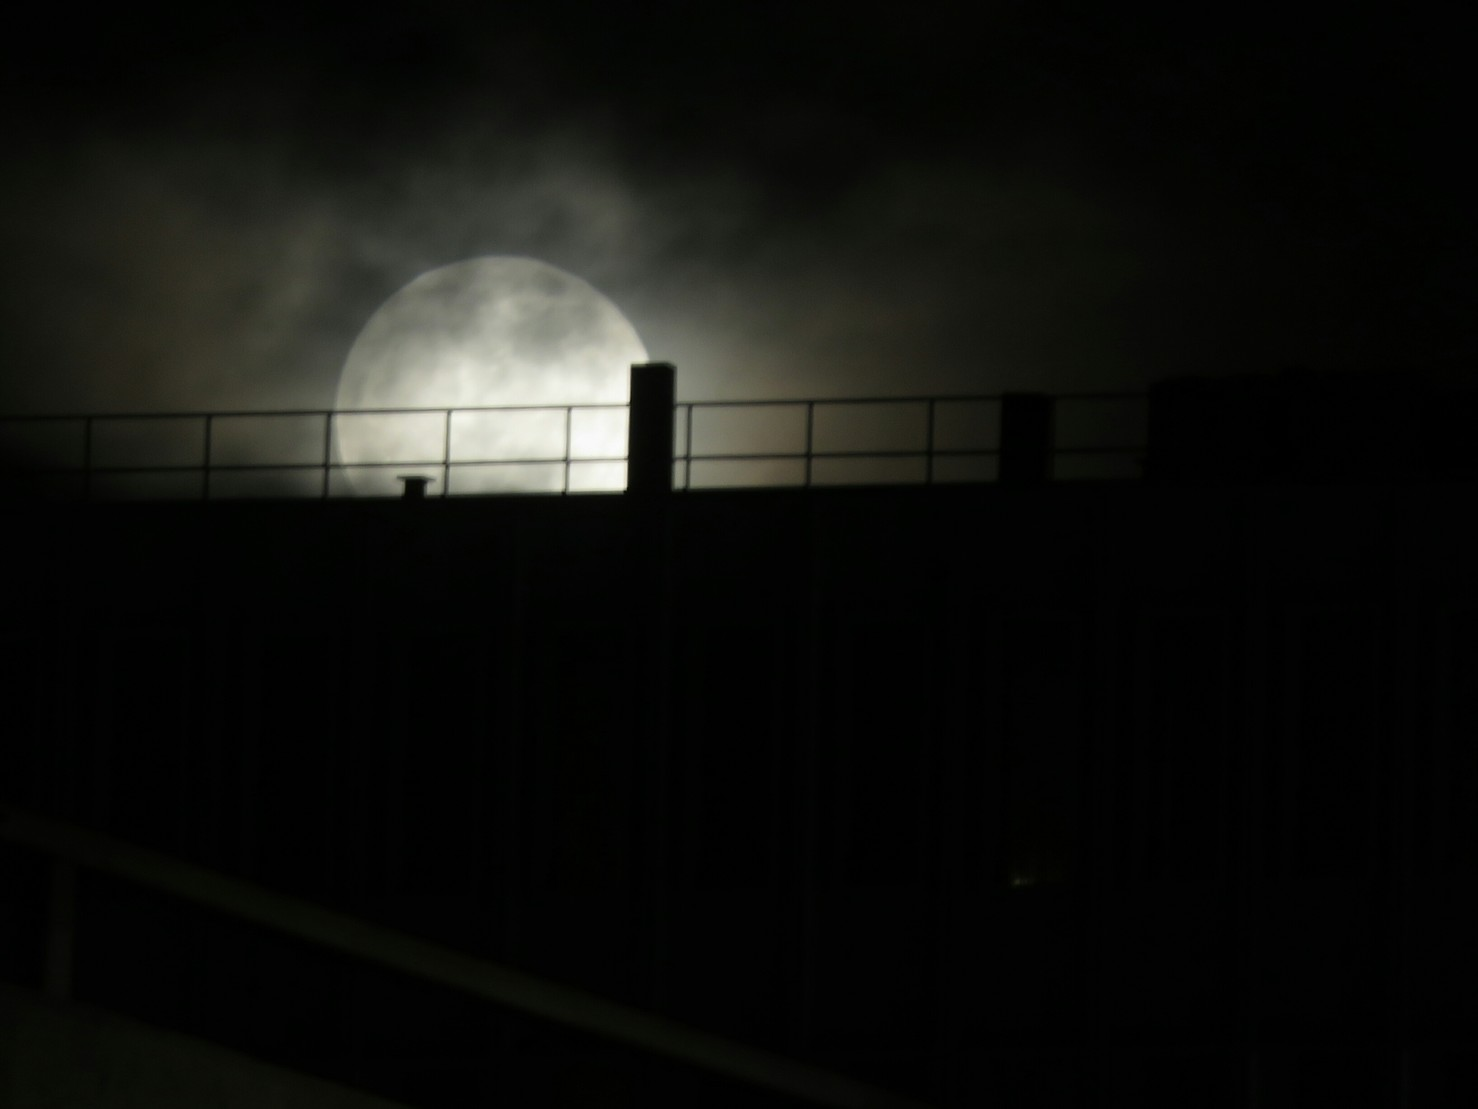 Looking...up?...at the #moonrise over a rooftop.#photo #silhouette #night #sky #moon